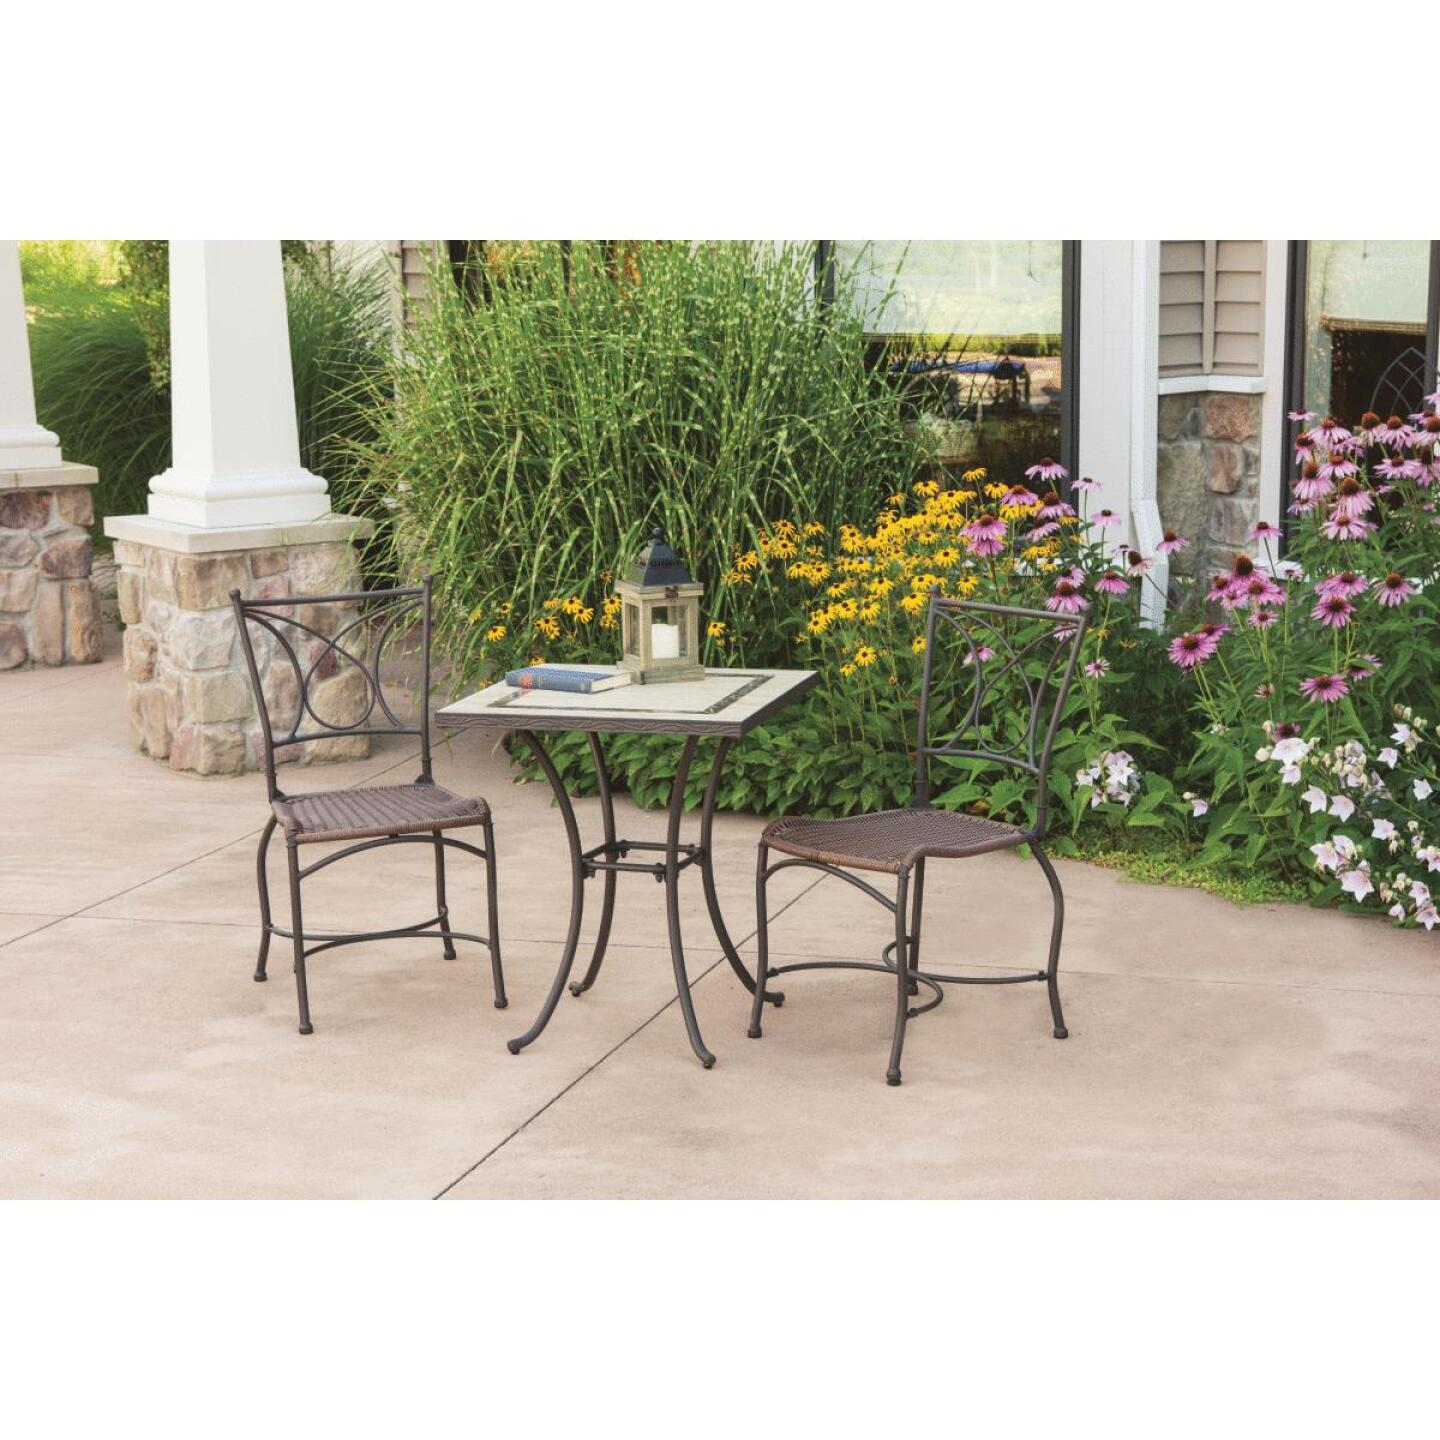 Florence 3-Piece Bistro Set with Wicker Seats Image 11